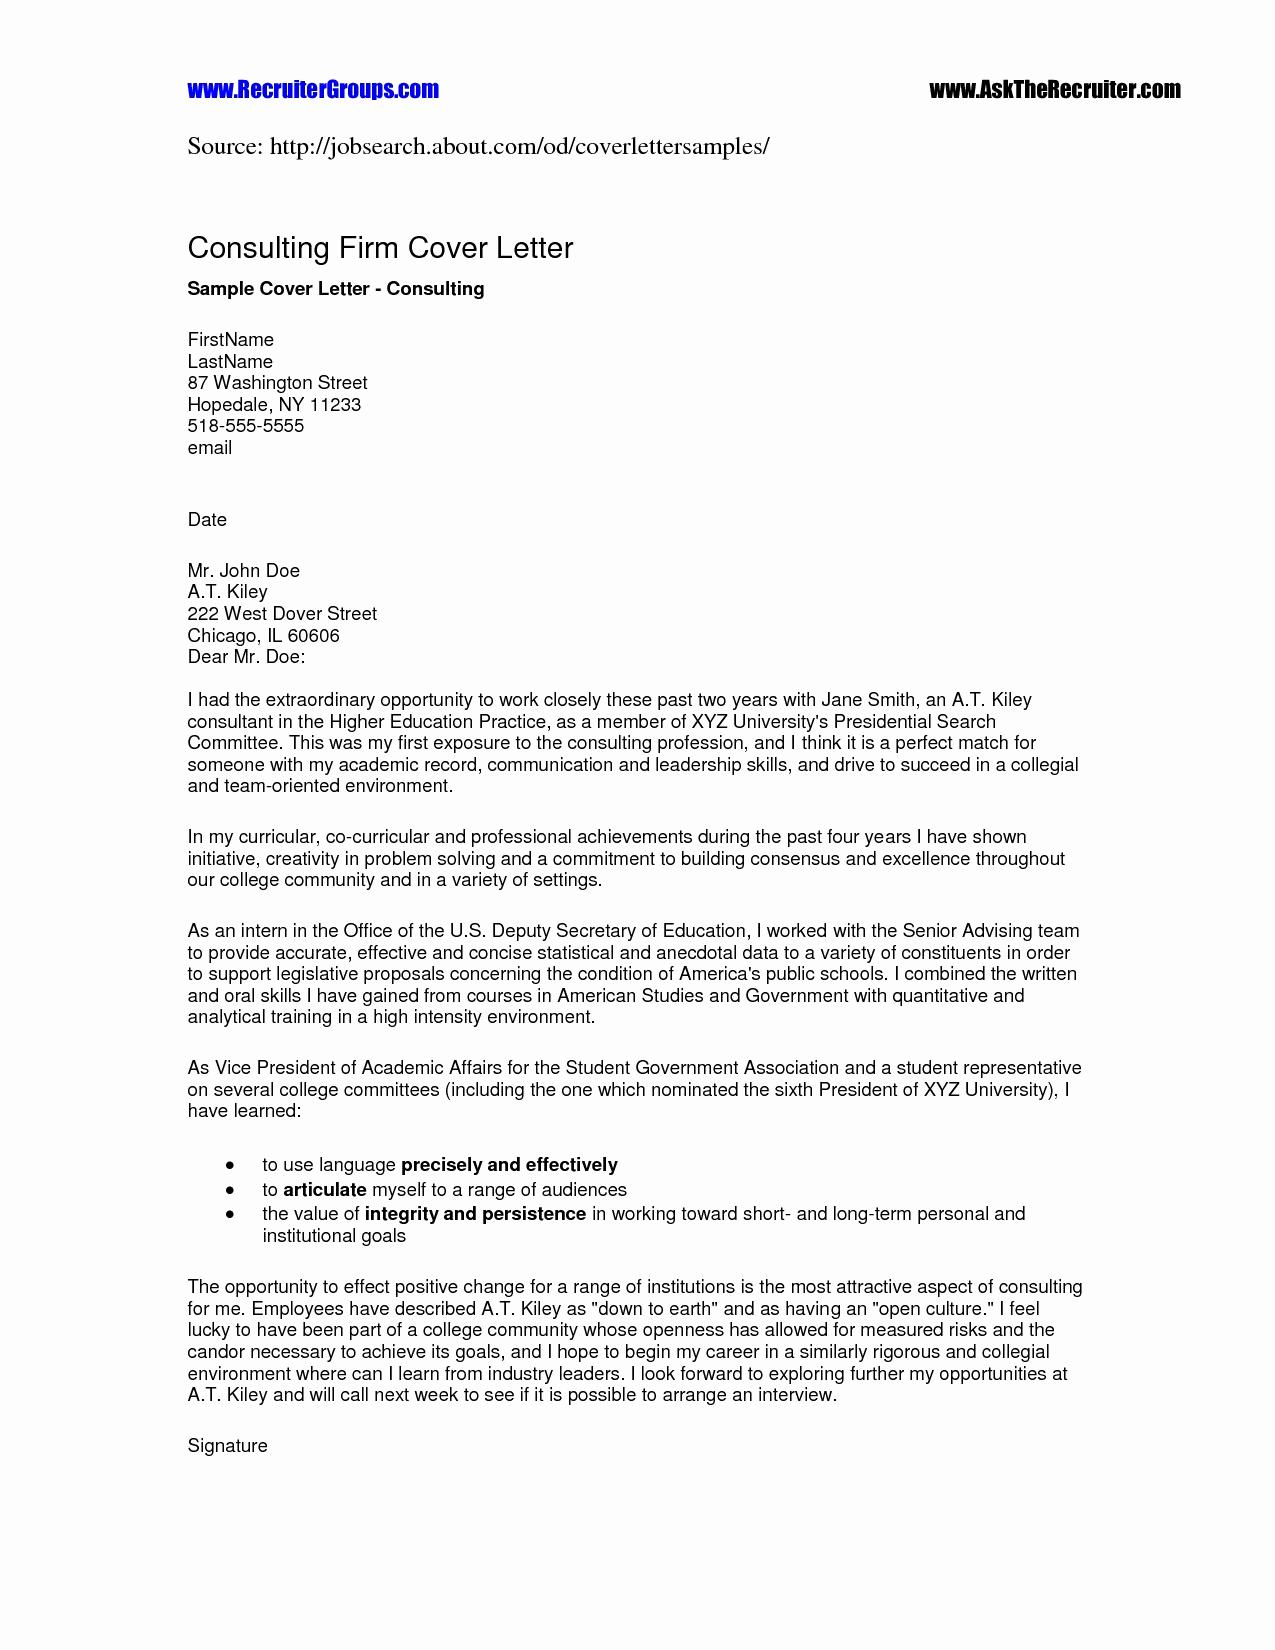 Generic Letter Of Intent Template - Letter Intent format Elegant How to format A Cover Letter 32